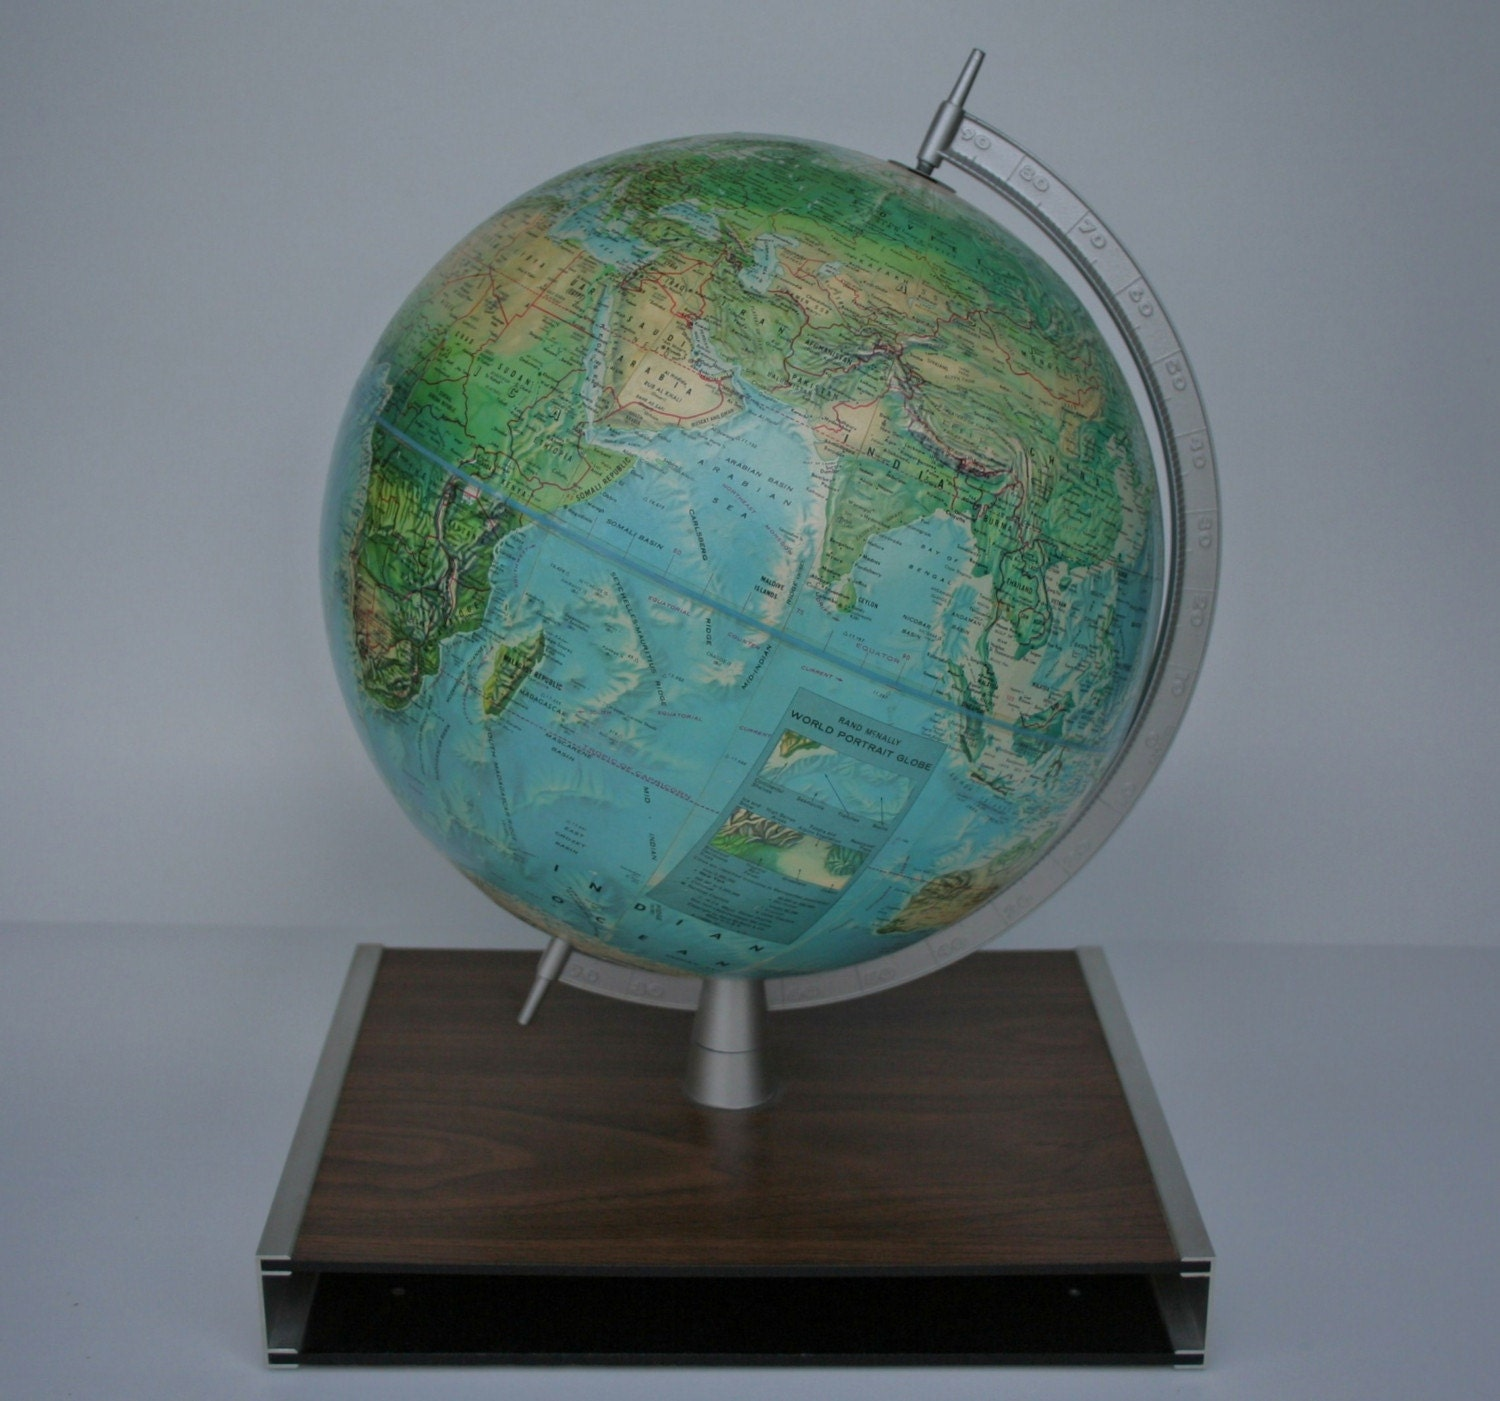 Collecting Antique and Vintage Globes June